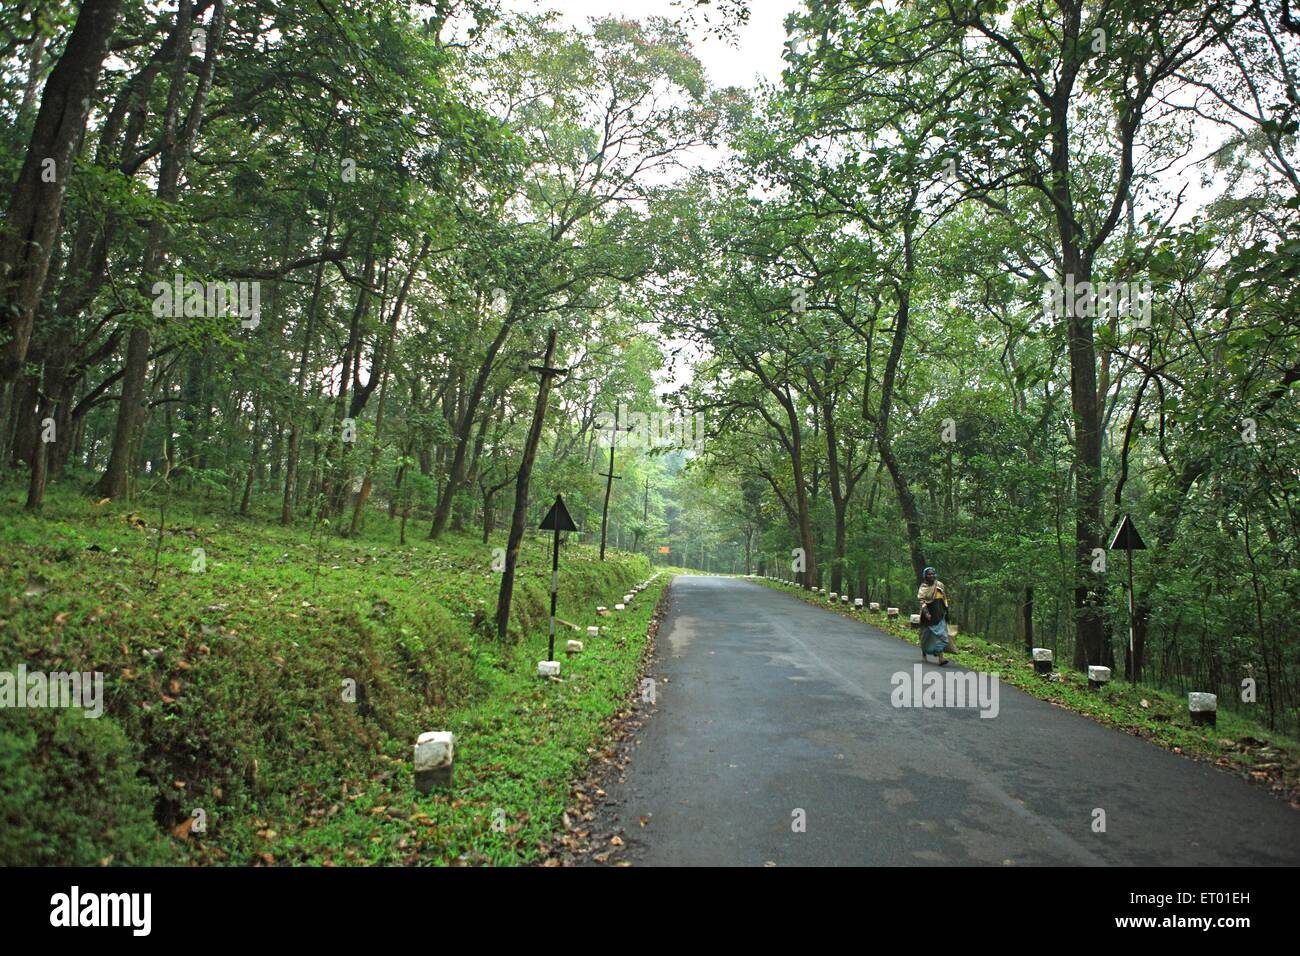 Trees planting sides of road at Periyar tiger reserve ; Thekkadi ; Kerala ; India - Stock Image